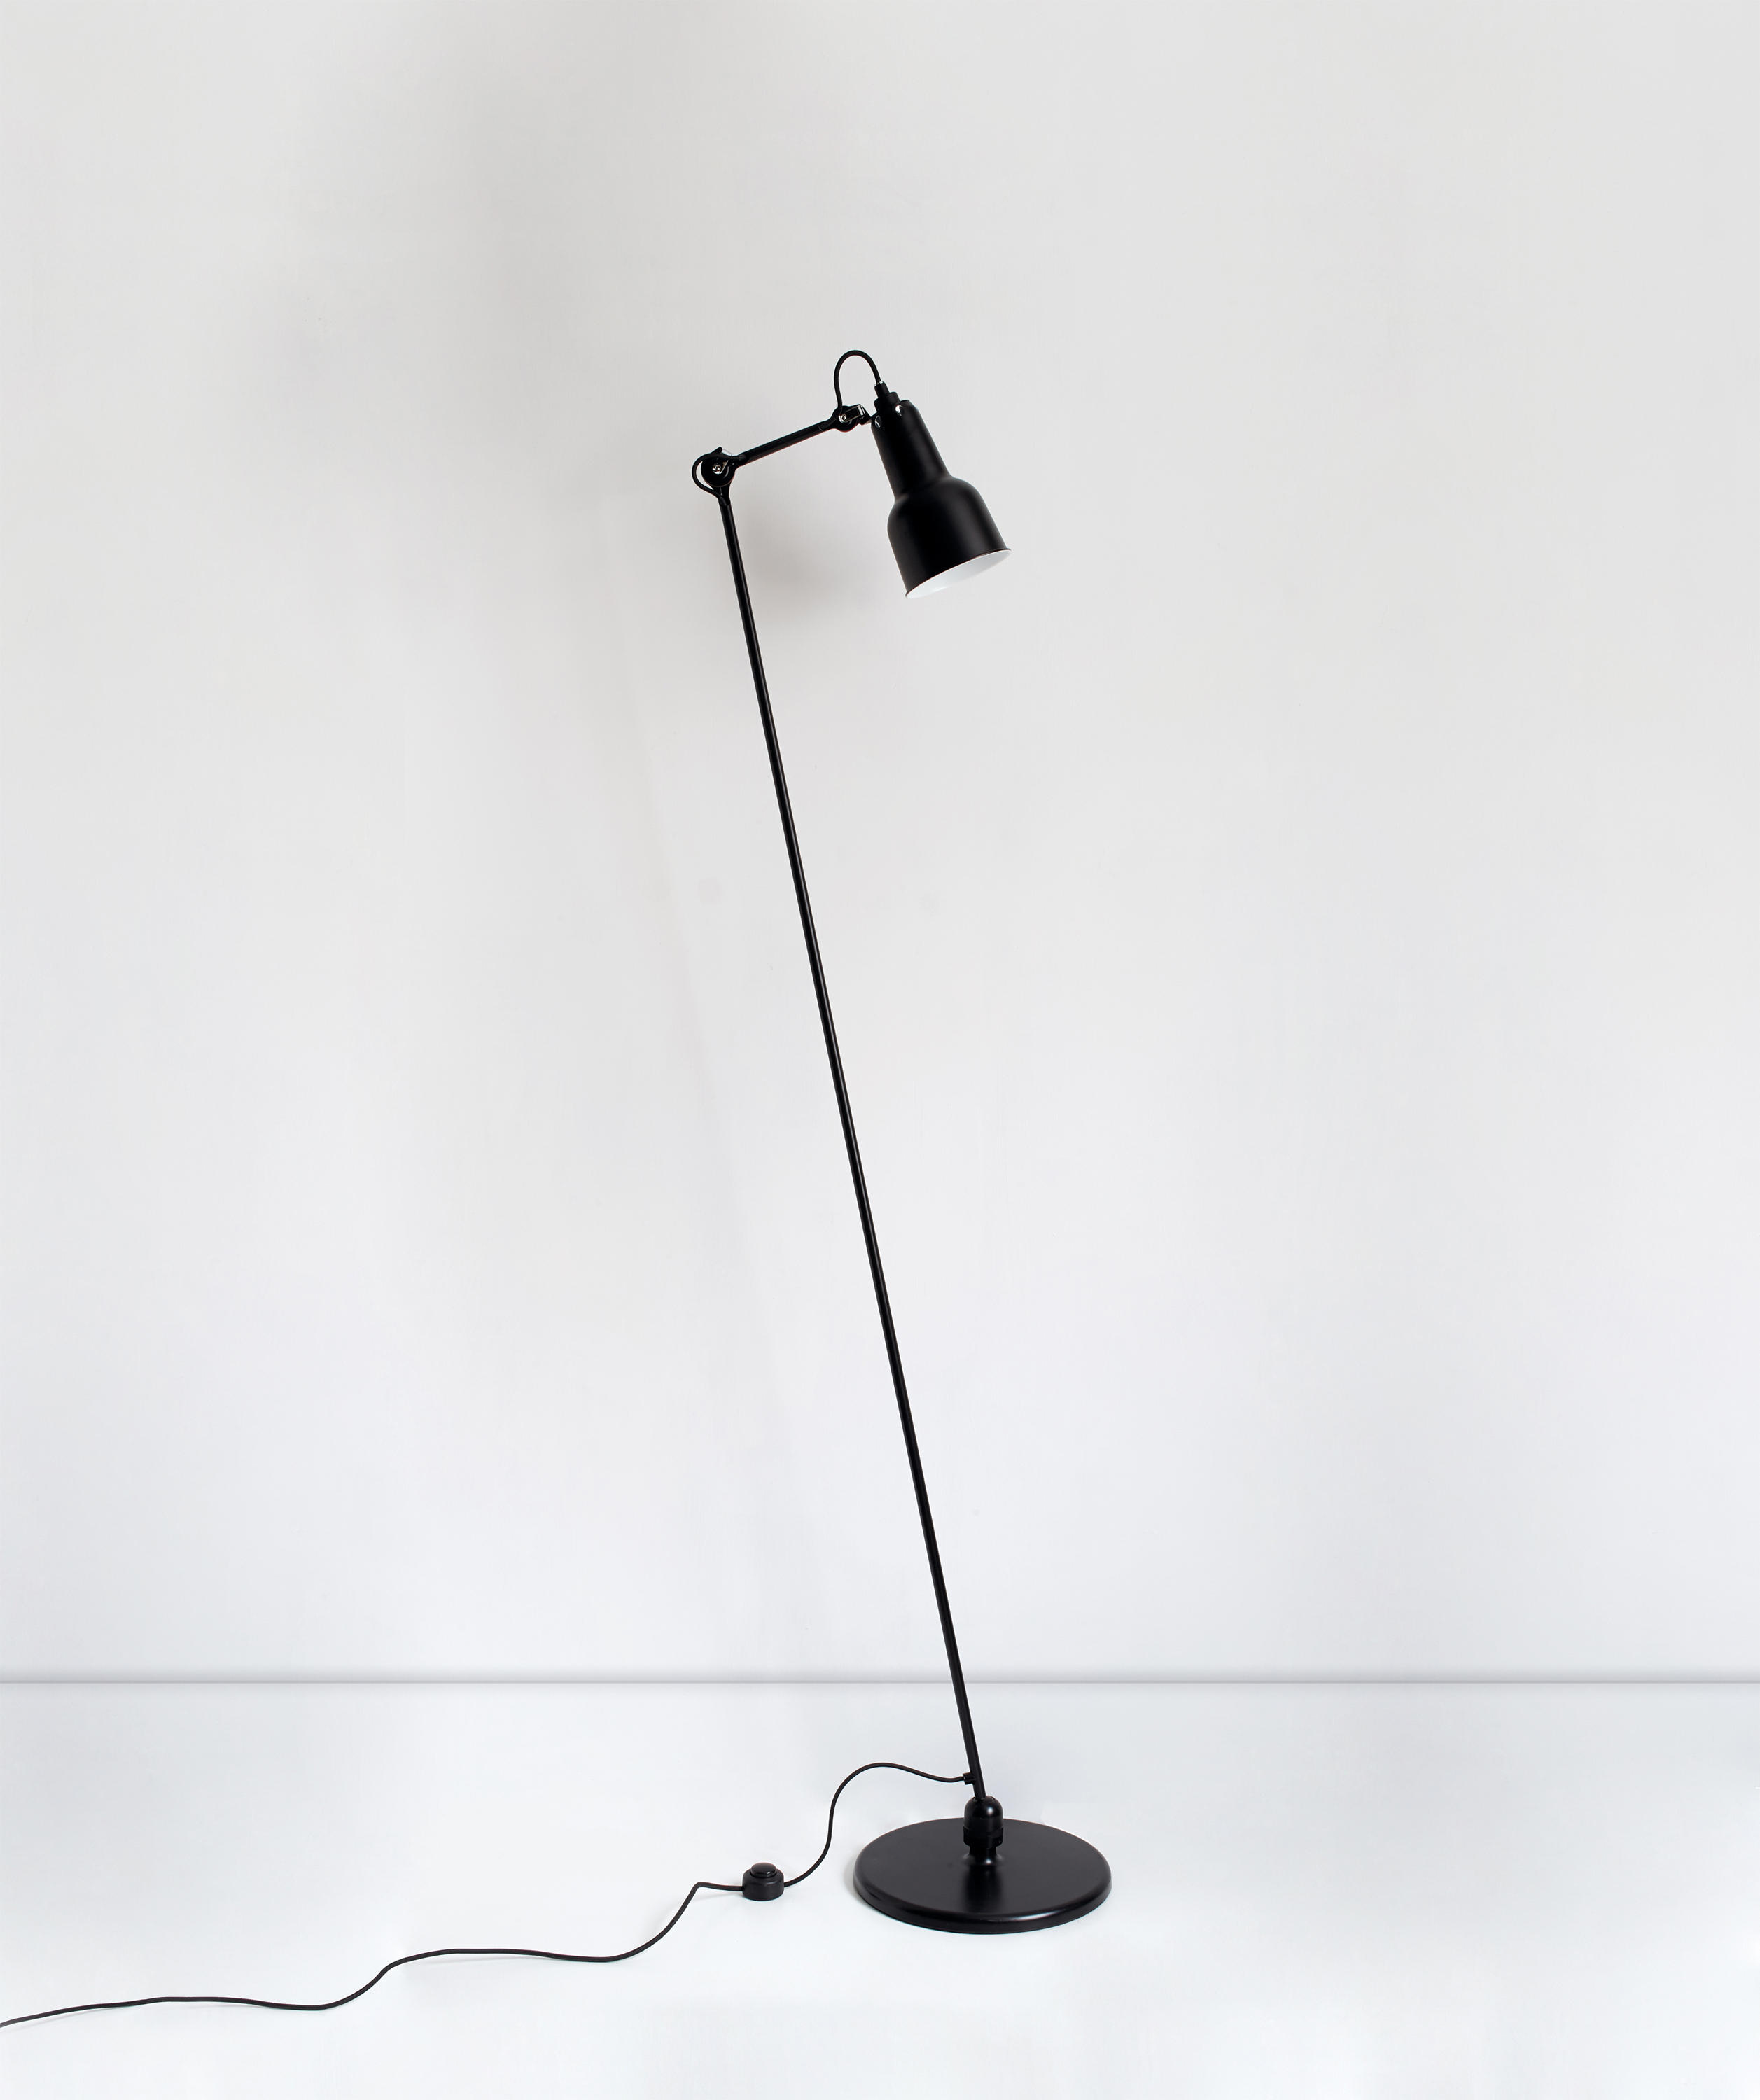 Lampe Gras N 230 Black Free Standing Lights From Dcw Editions